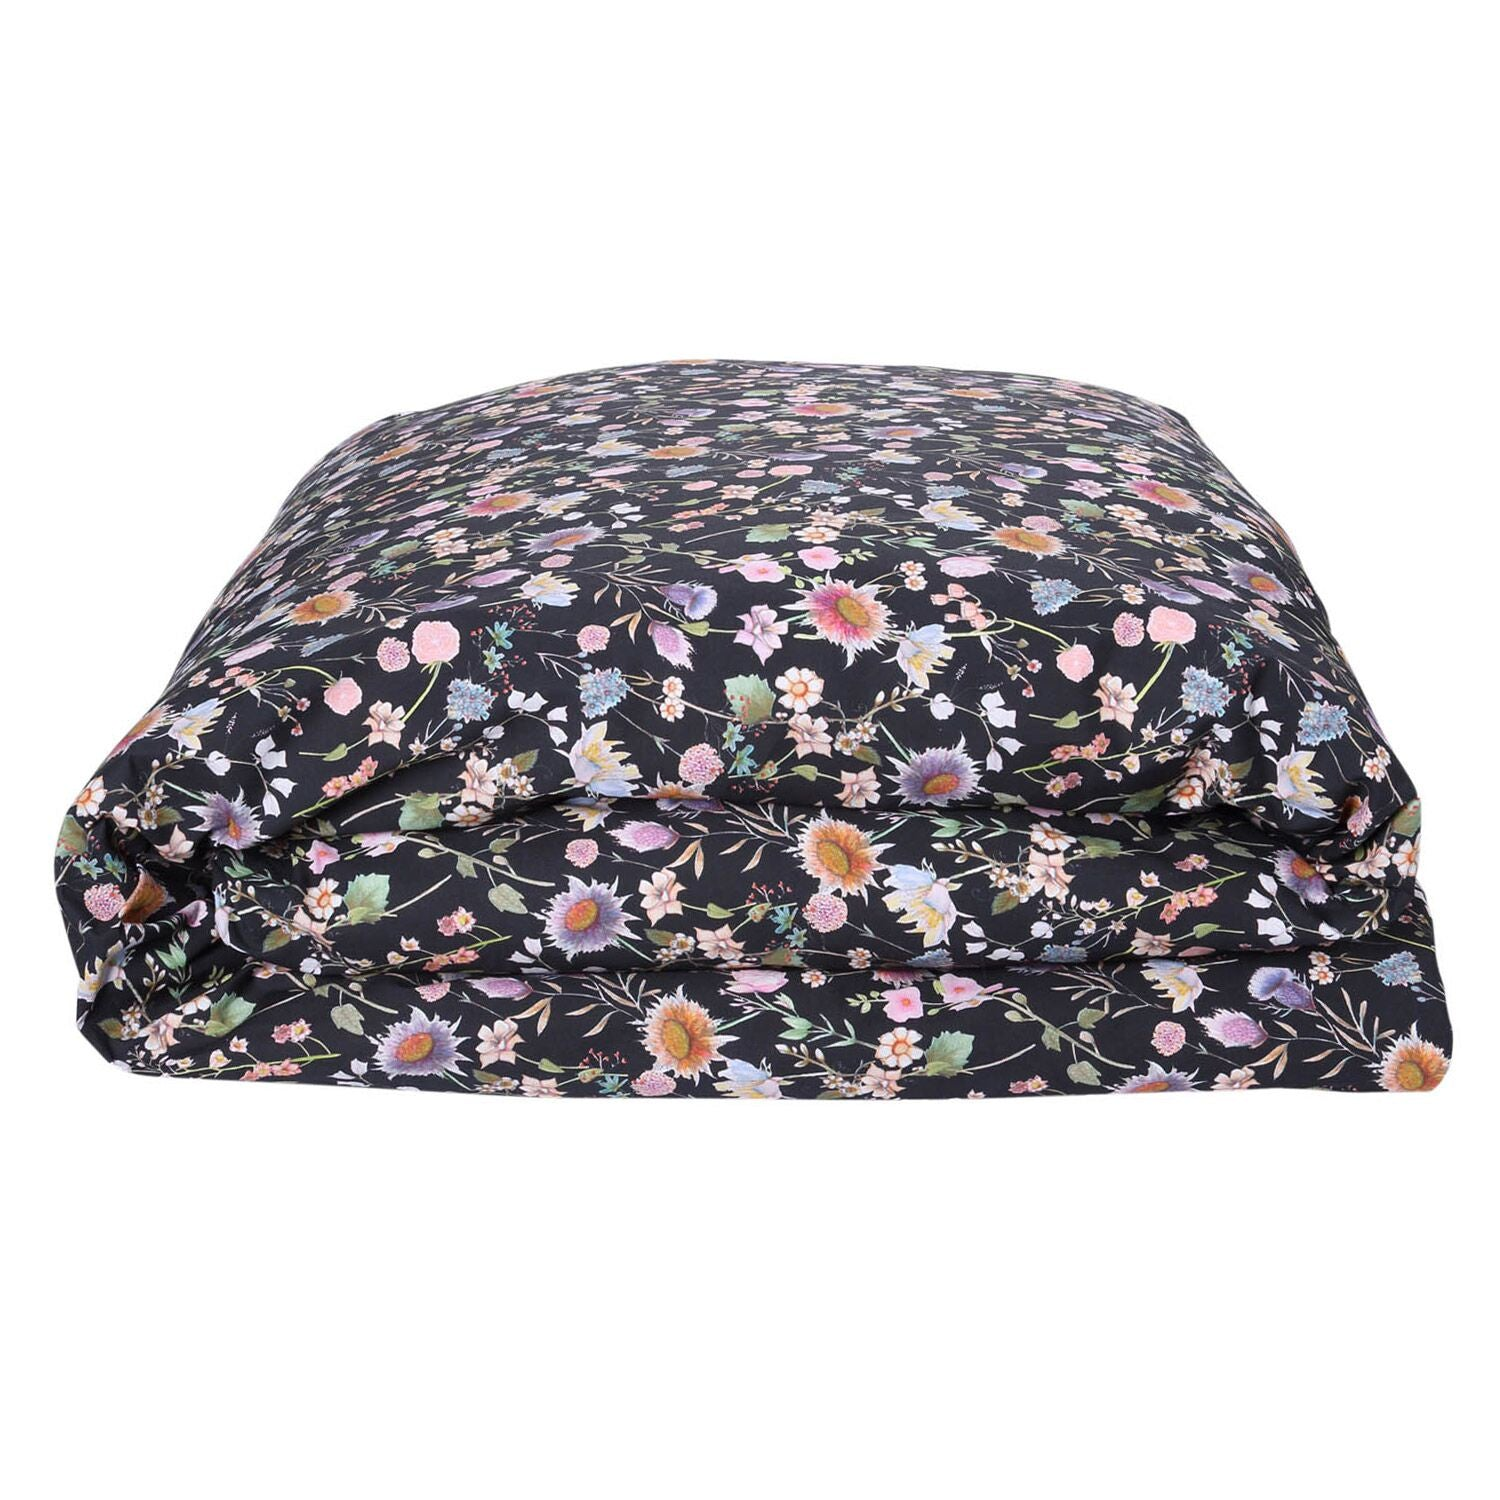 Kip & Co Bouquet Black Cotton Quilt Cover- Queen - The Artisan Storeroom